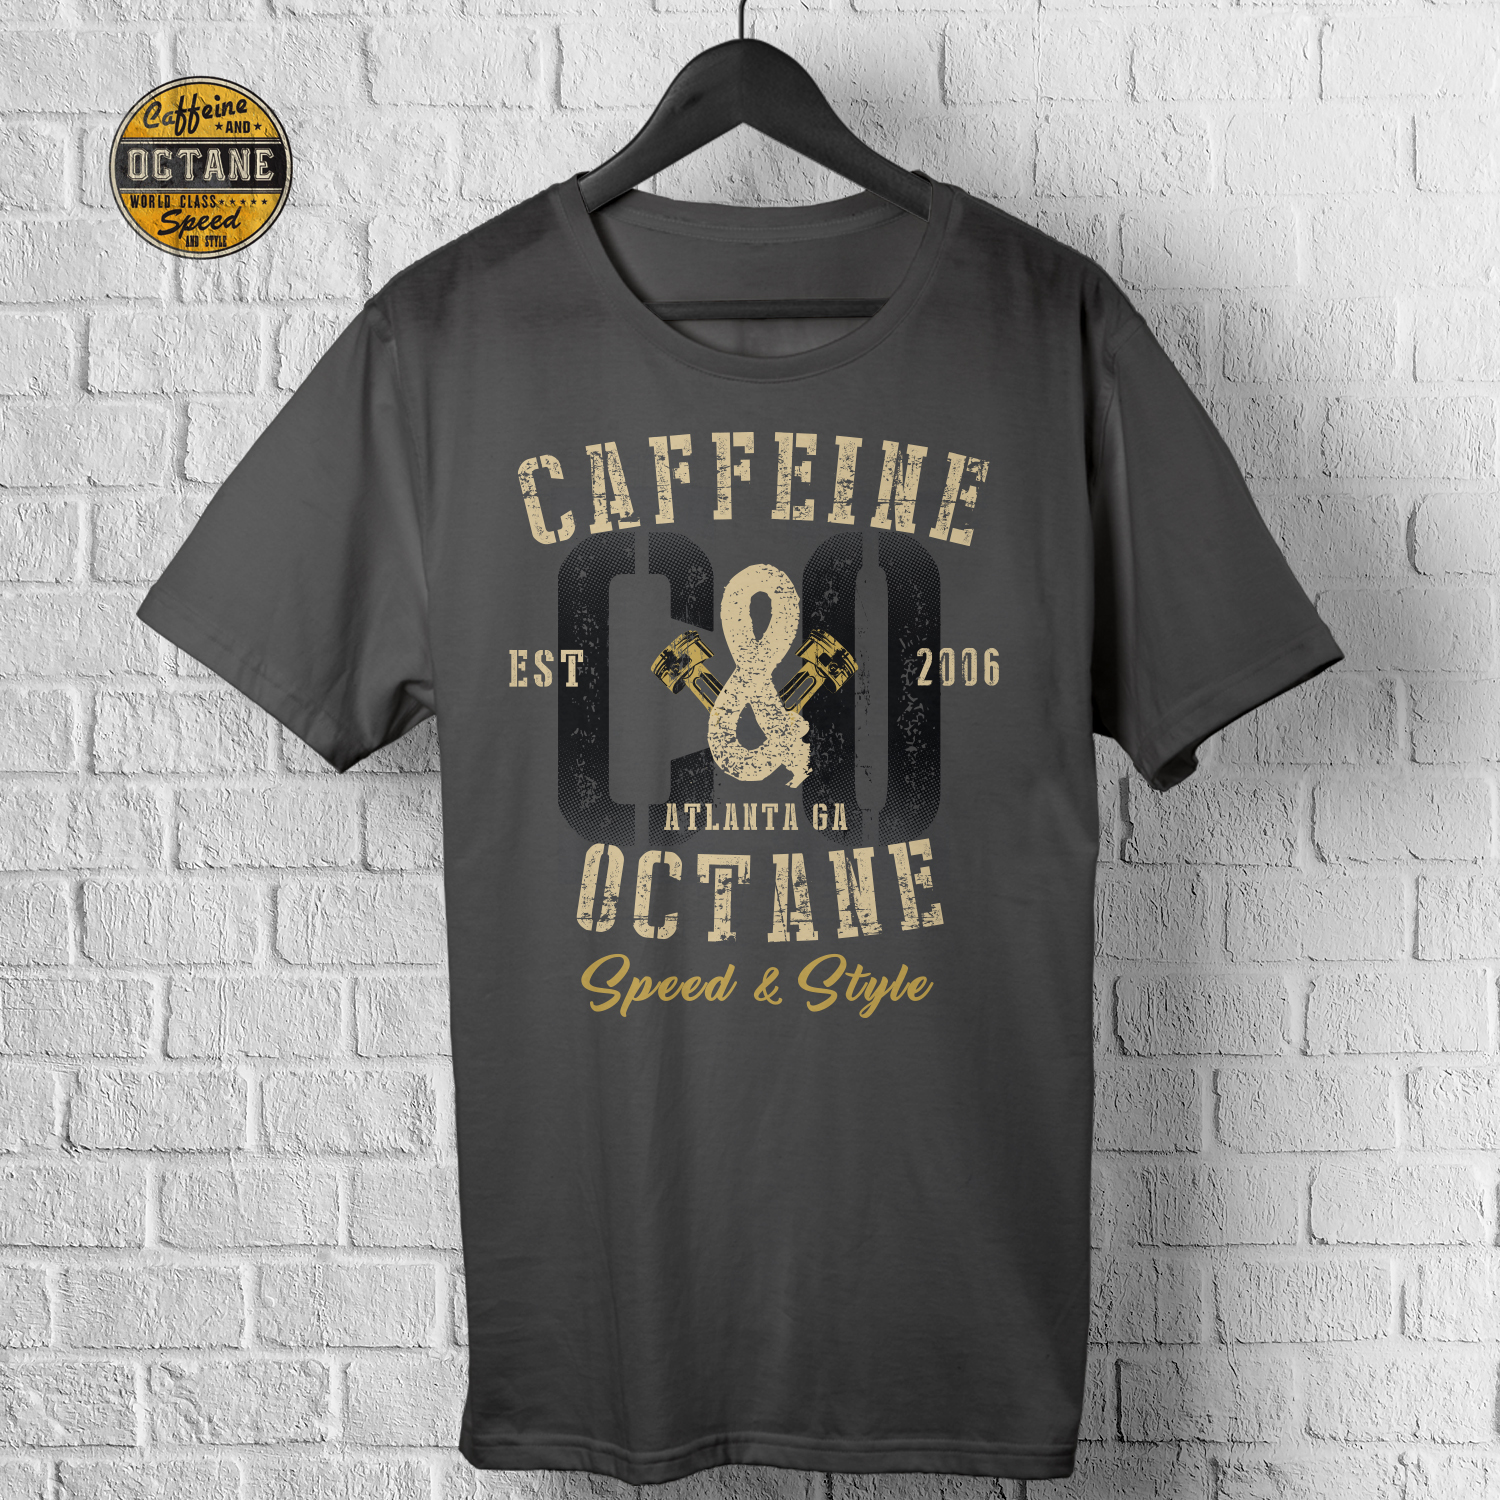 Masculine Bold Automotive T Shirt Design For Special Events